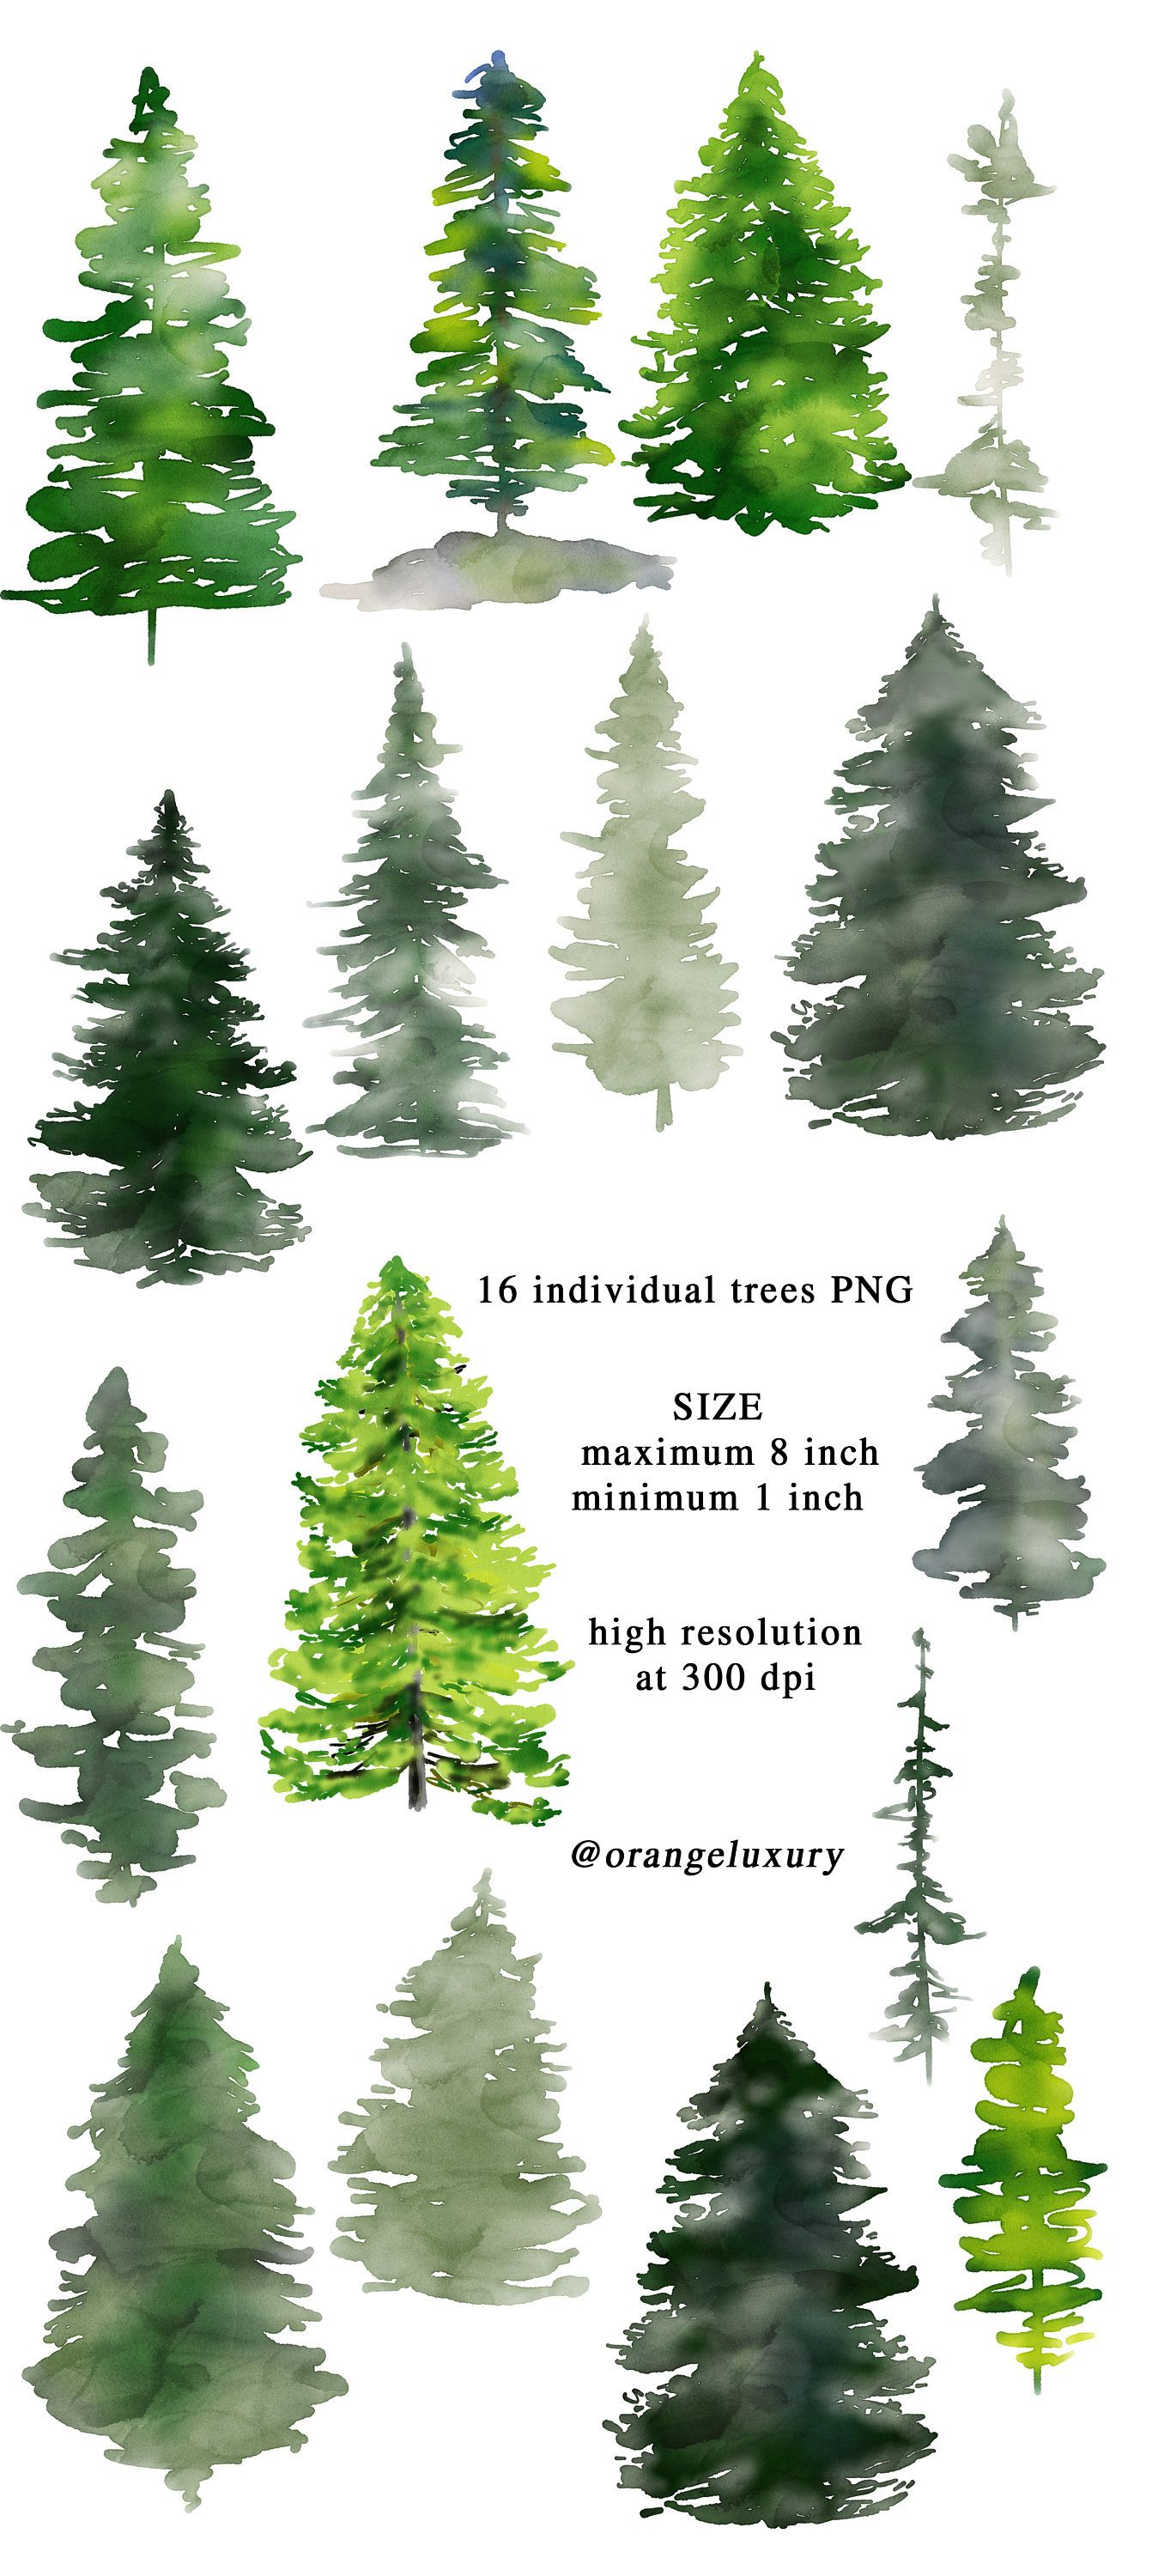 Watercolor Pine Trees Christmas Clipart Winter Clipart Watercolor Conifers Forest Wedding Fir Tree Png Forest Landscape Digital Watercolor Christmas Tree Forest Landscape Watercolor Trees